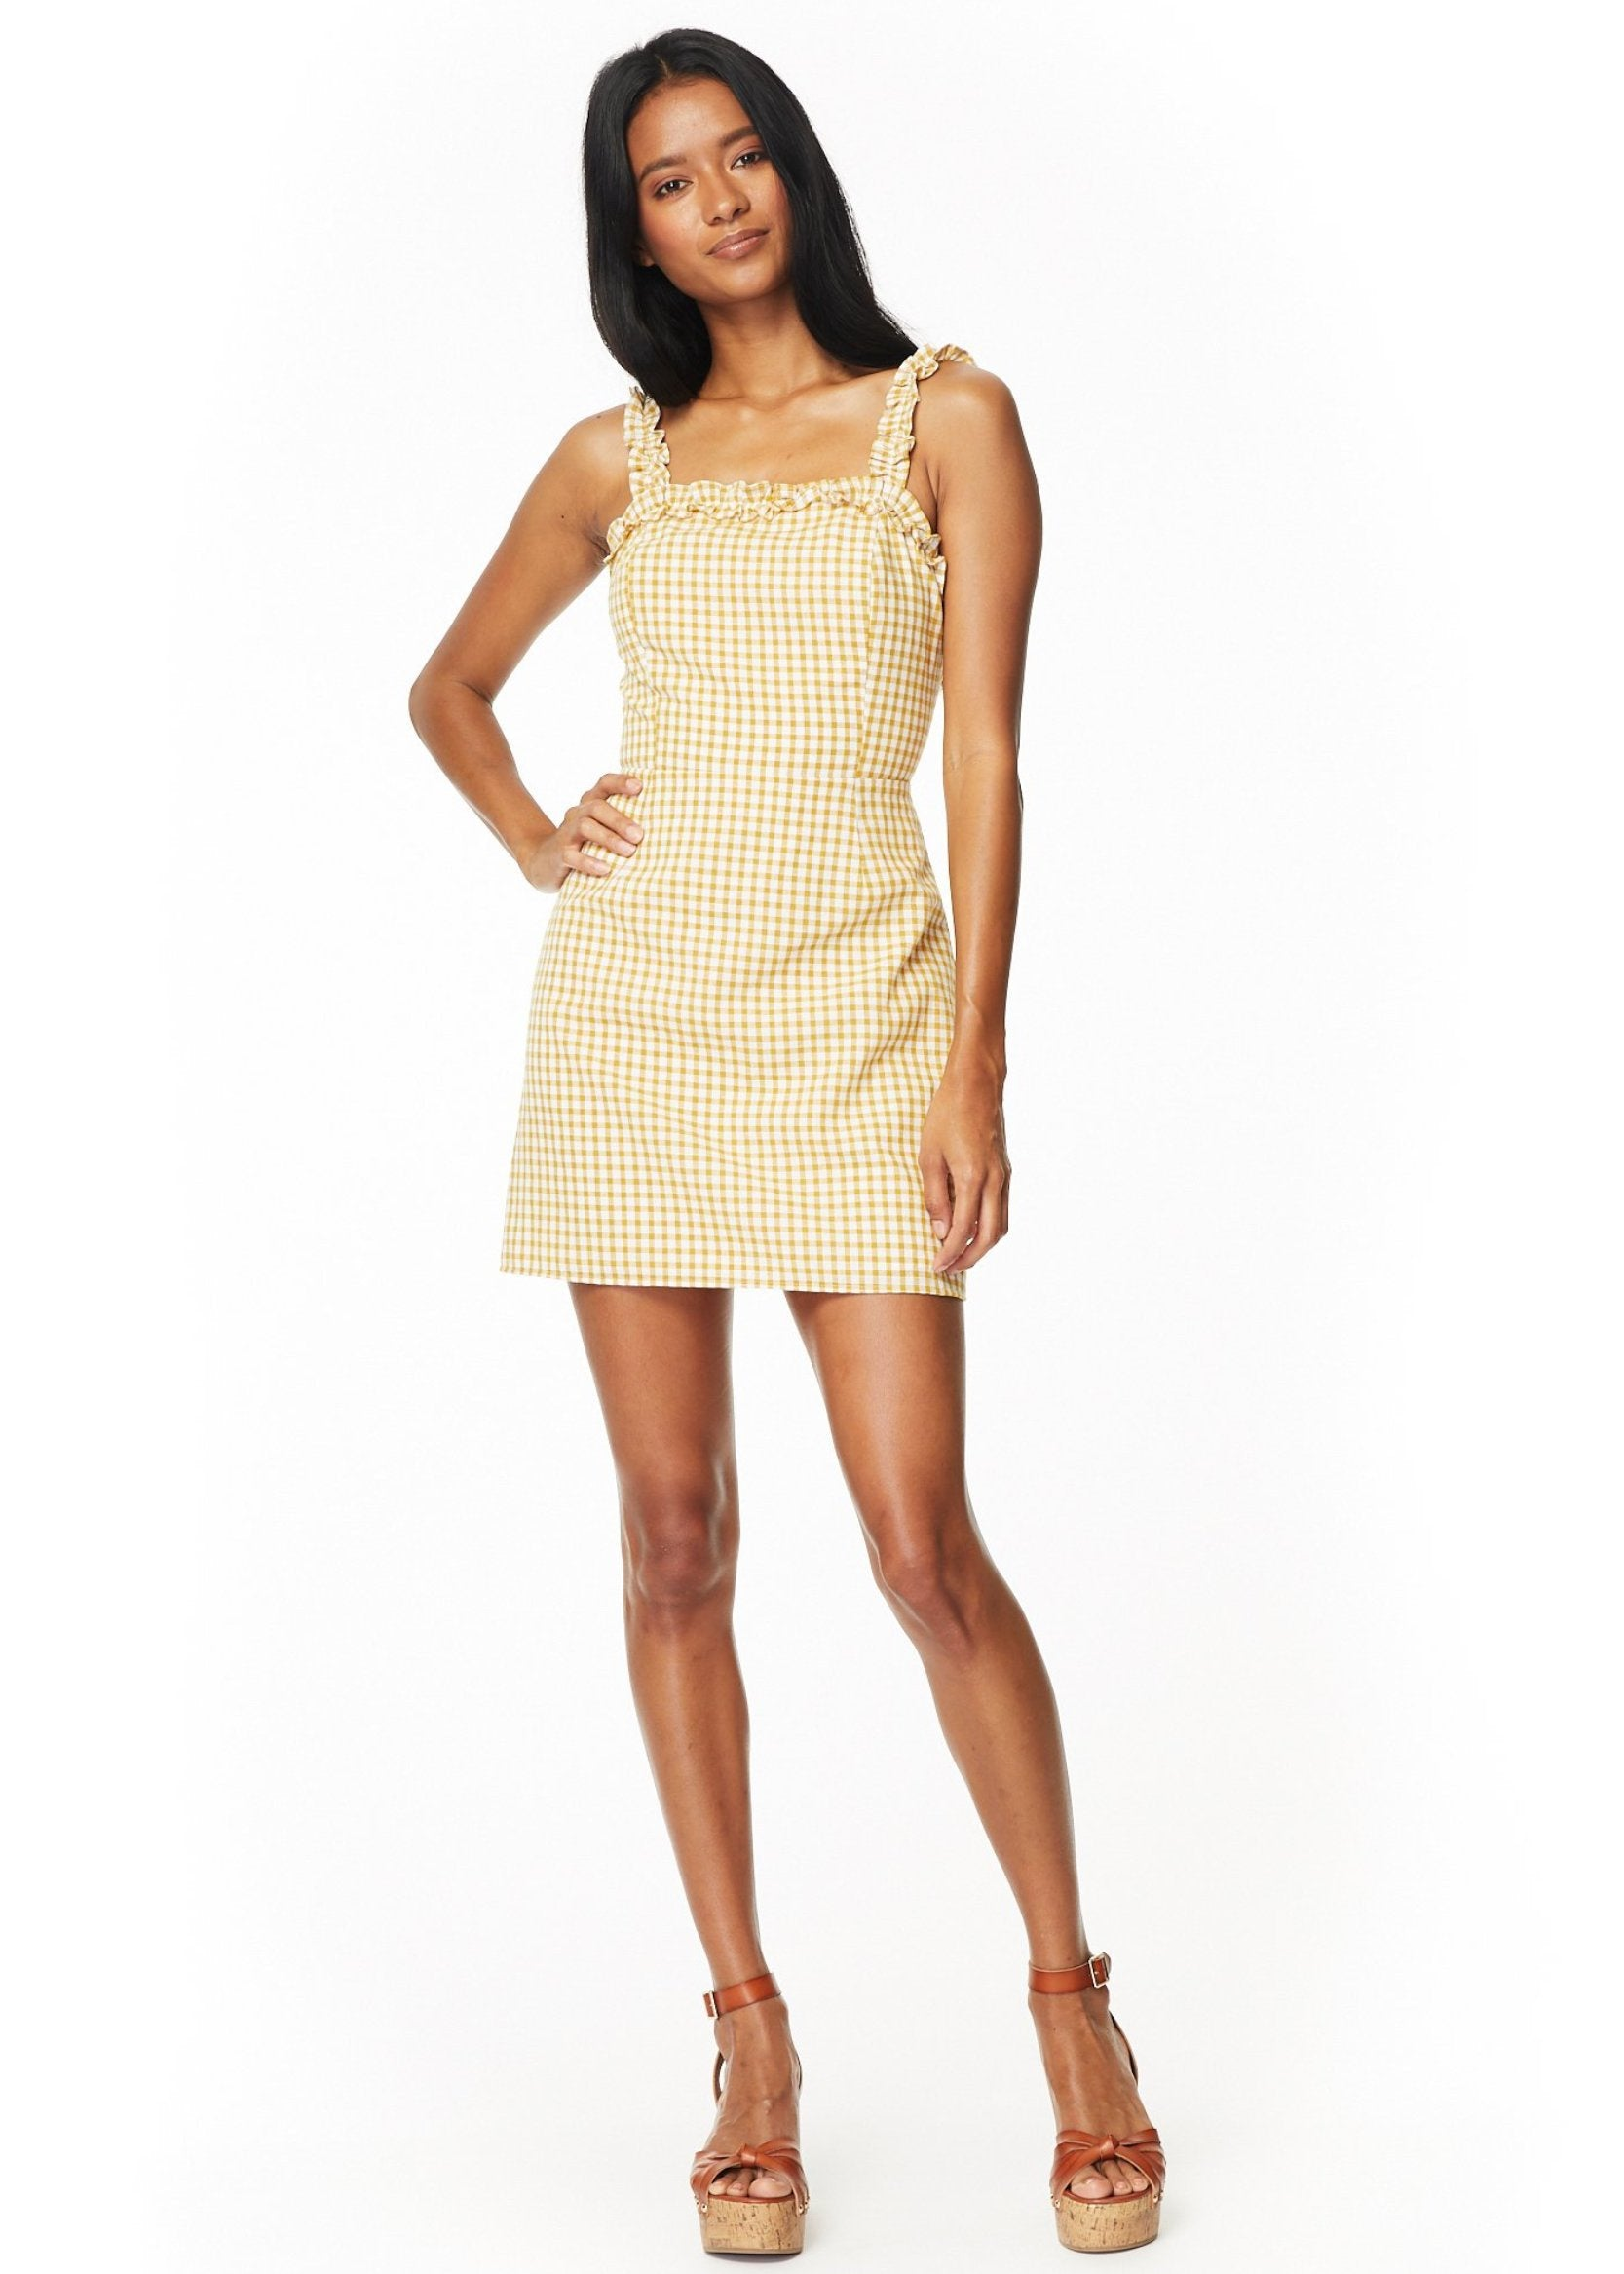 Lost + Wander Mimosa Ruffle Dress - Mustard/White